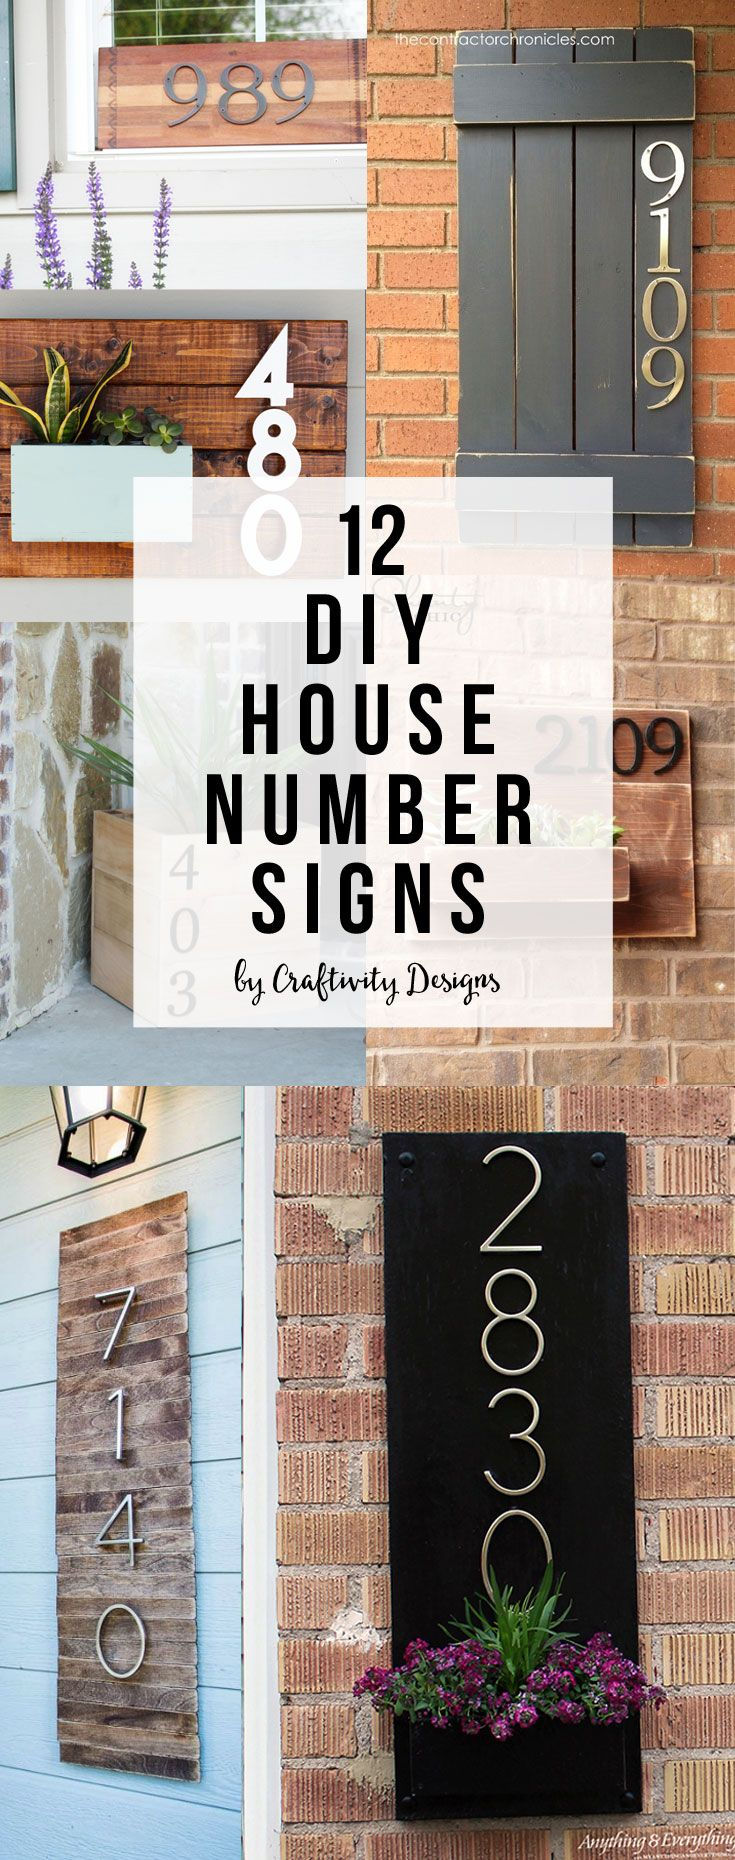 d30a7a73ec9edb5da6fd8ddd9bf095dc - How To Get A House Number For A New House